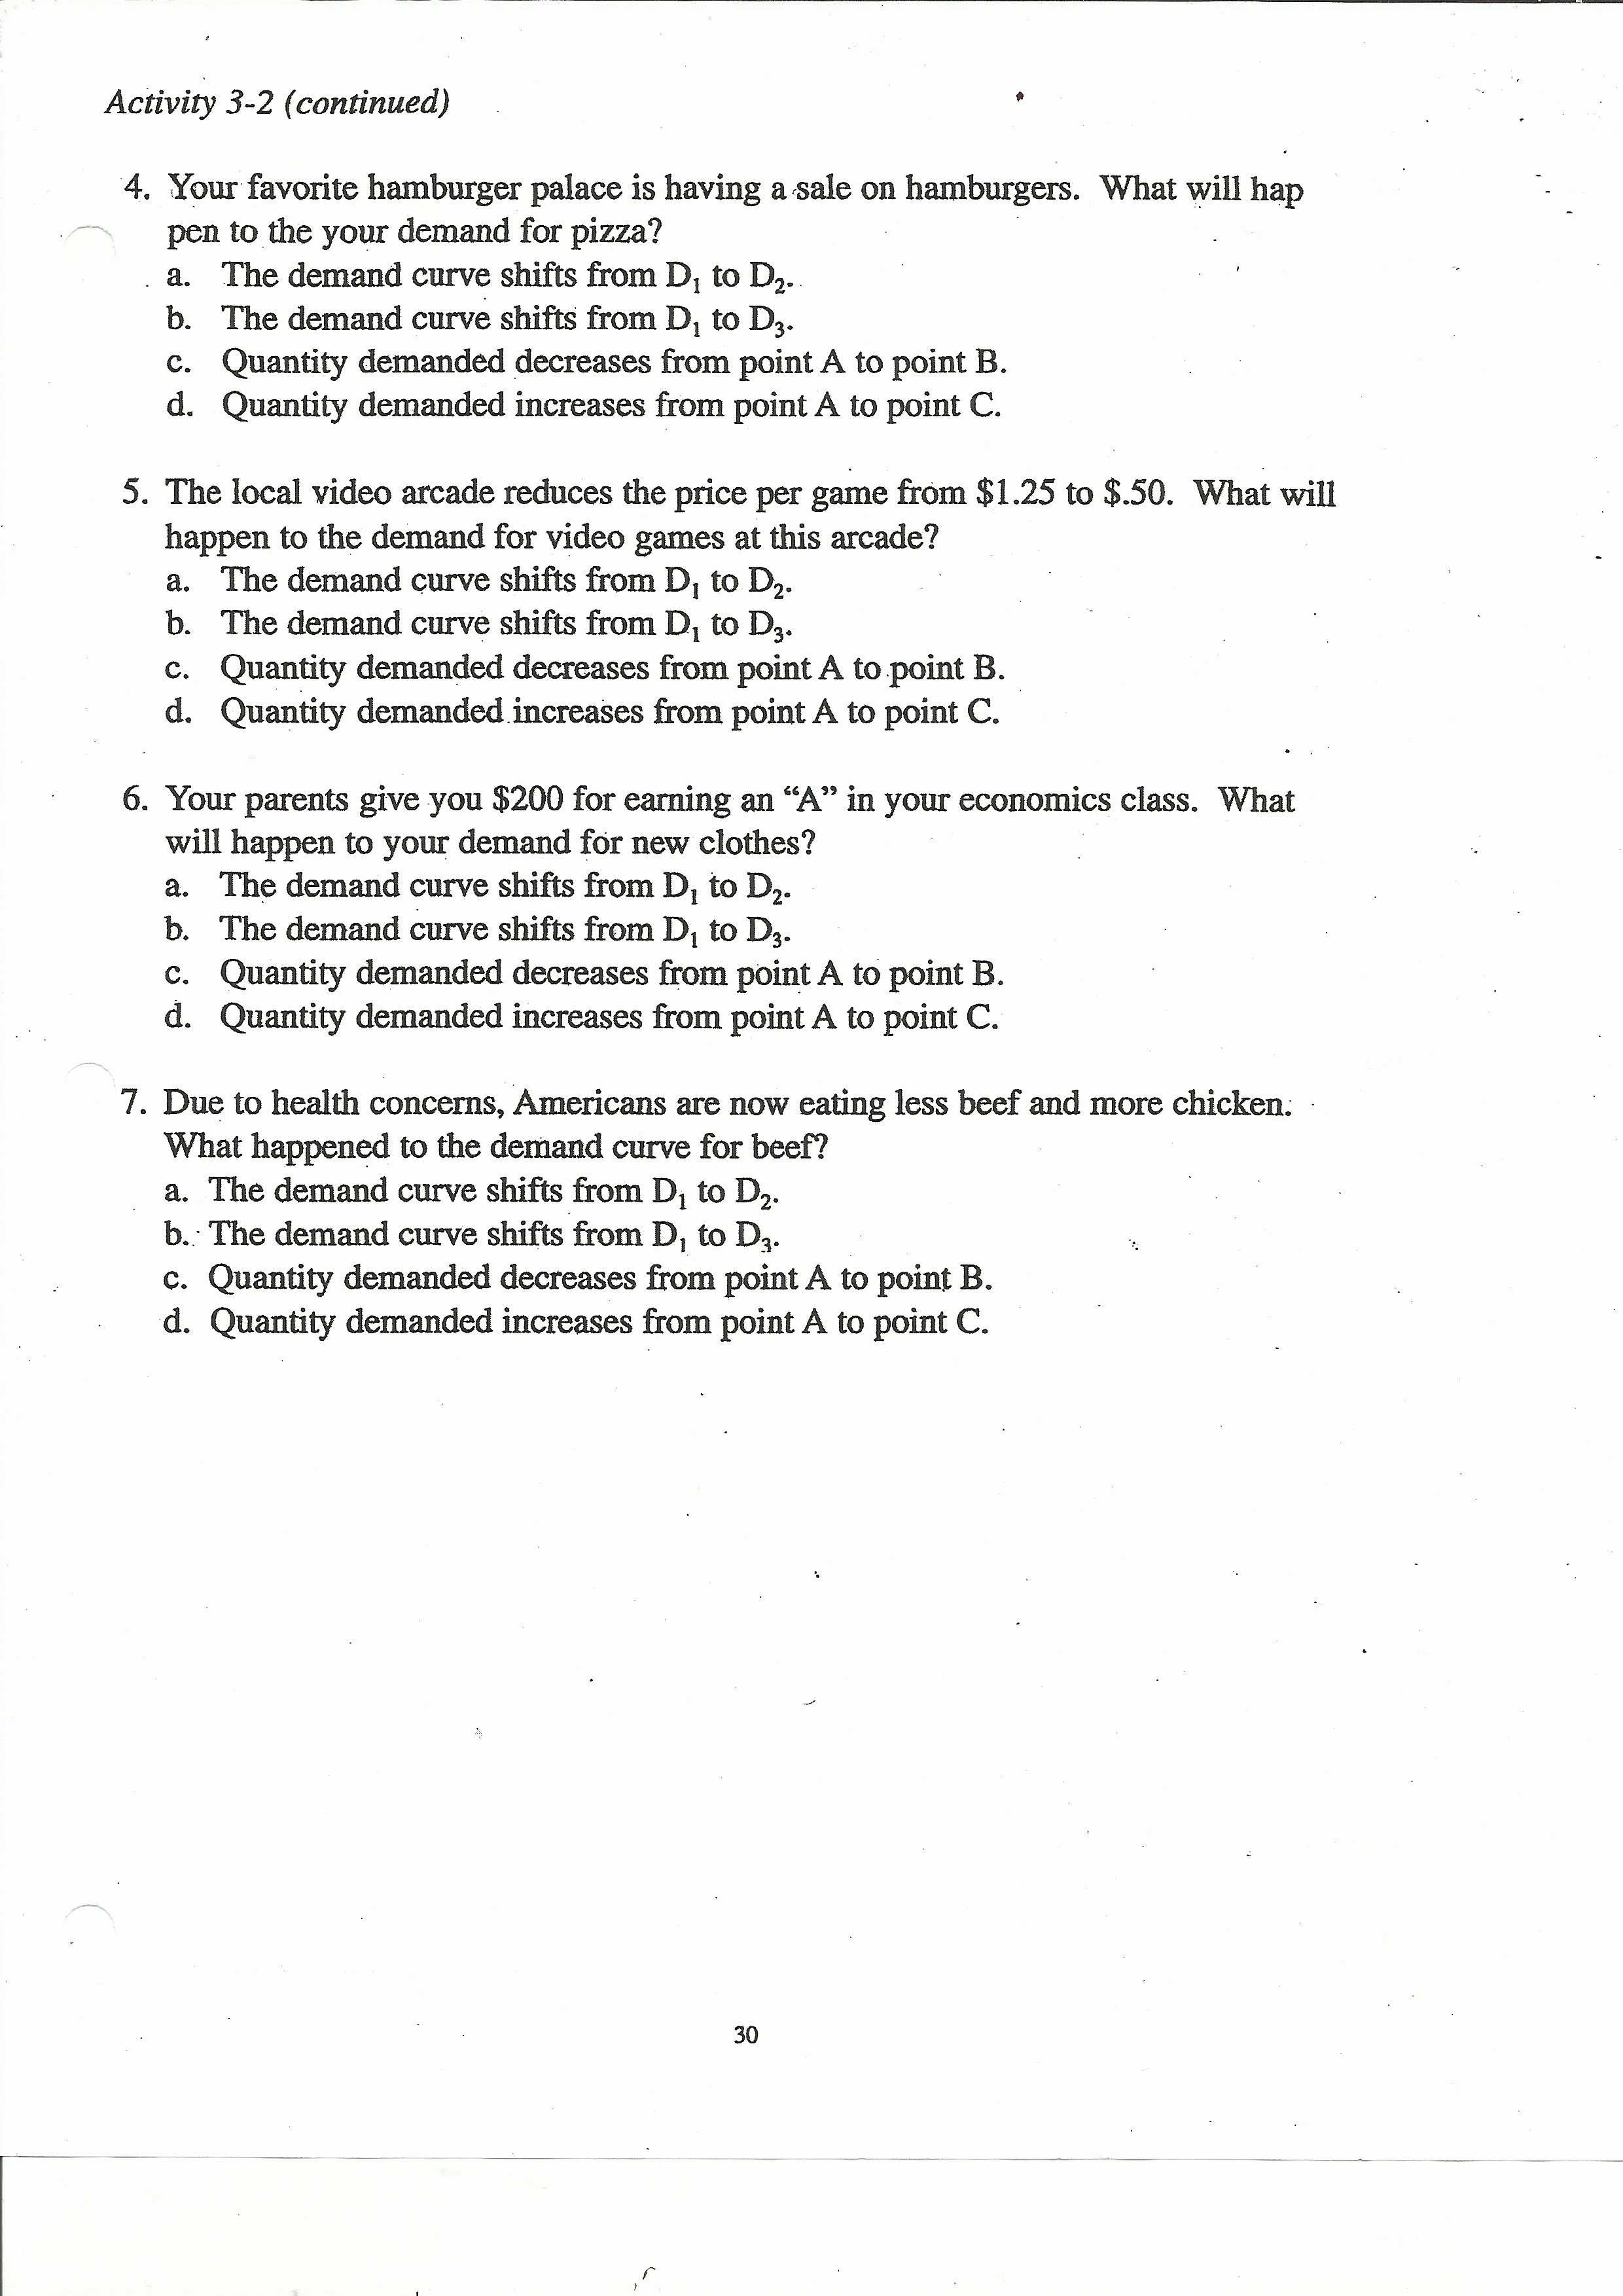 Anatomy Of the Constitution Worksheet New the Birth Constitution Worksheet Answer Key Math